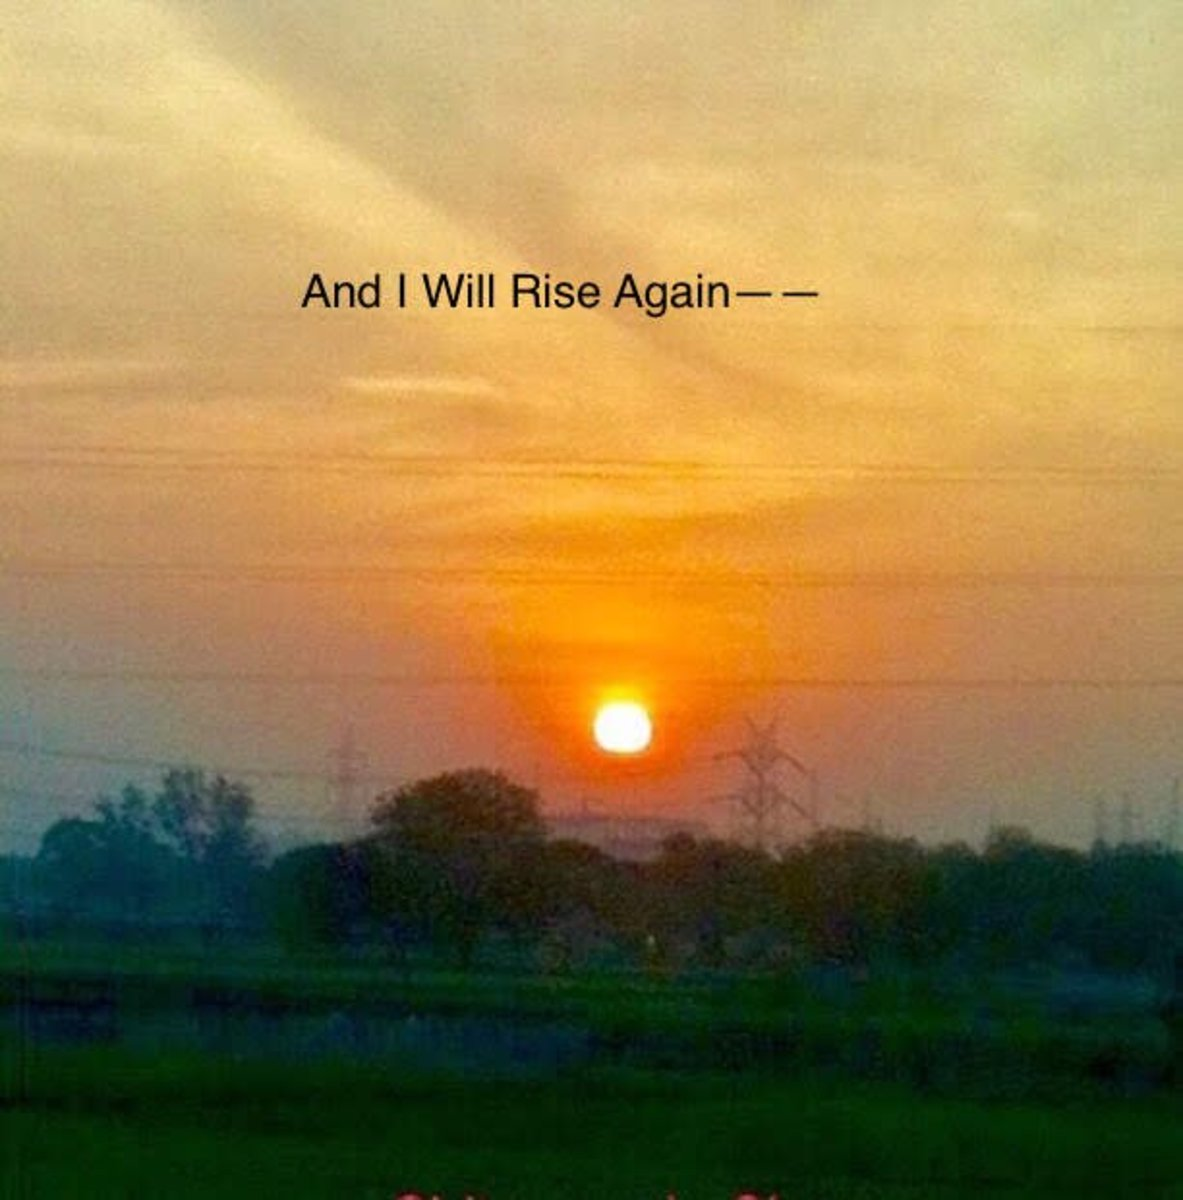 And I Will Rise Again—Poem